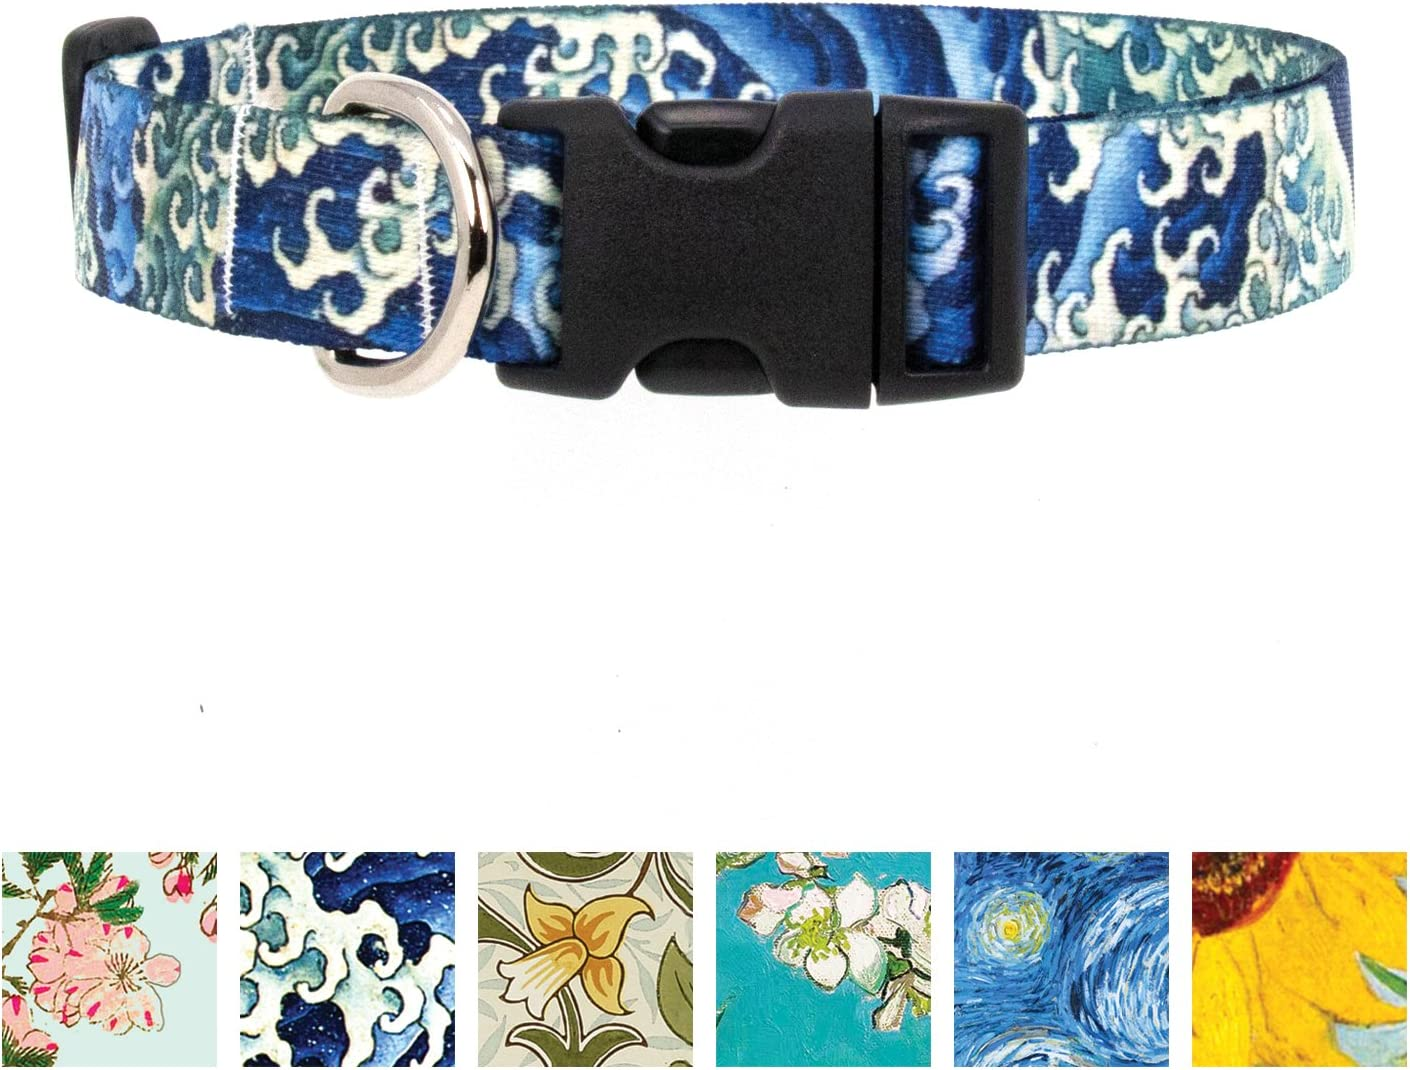 Buttonsmith Hokusai Waves Dog Collar - Made in The USA - Fadeproof Permanently Bonded Printing, Military Grade Rustproof Buckle, Choice of 6 Sizes